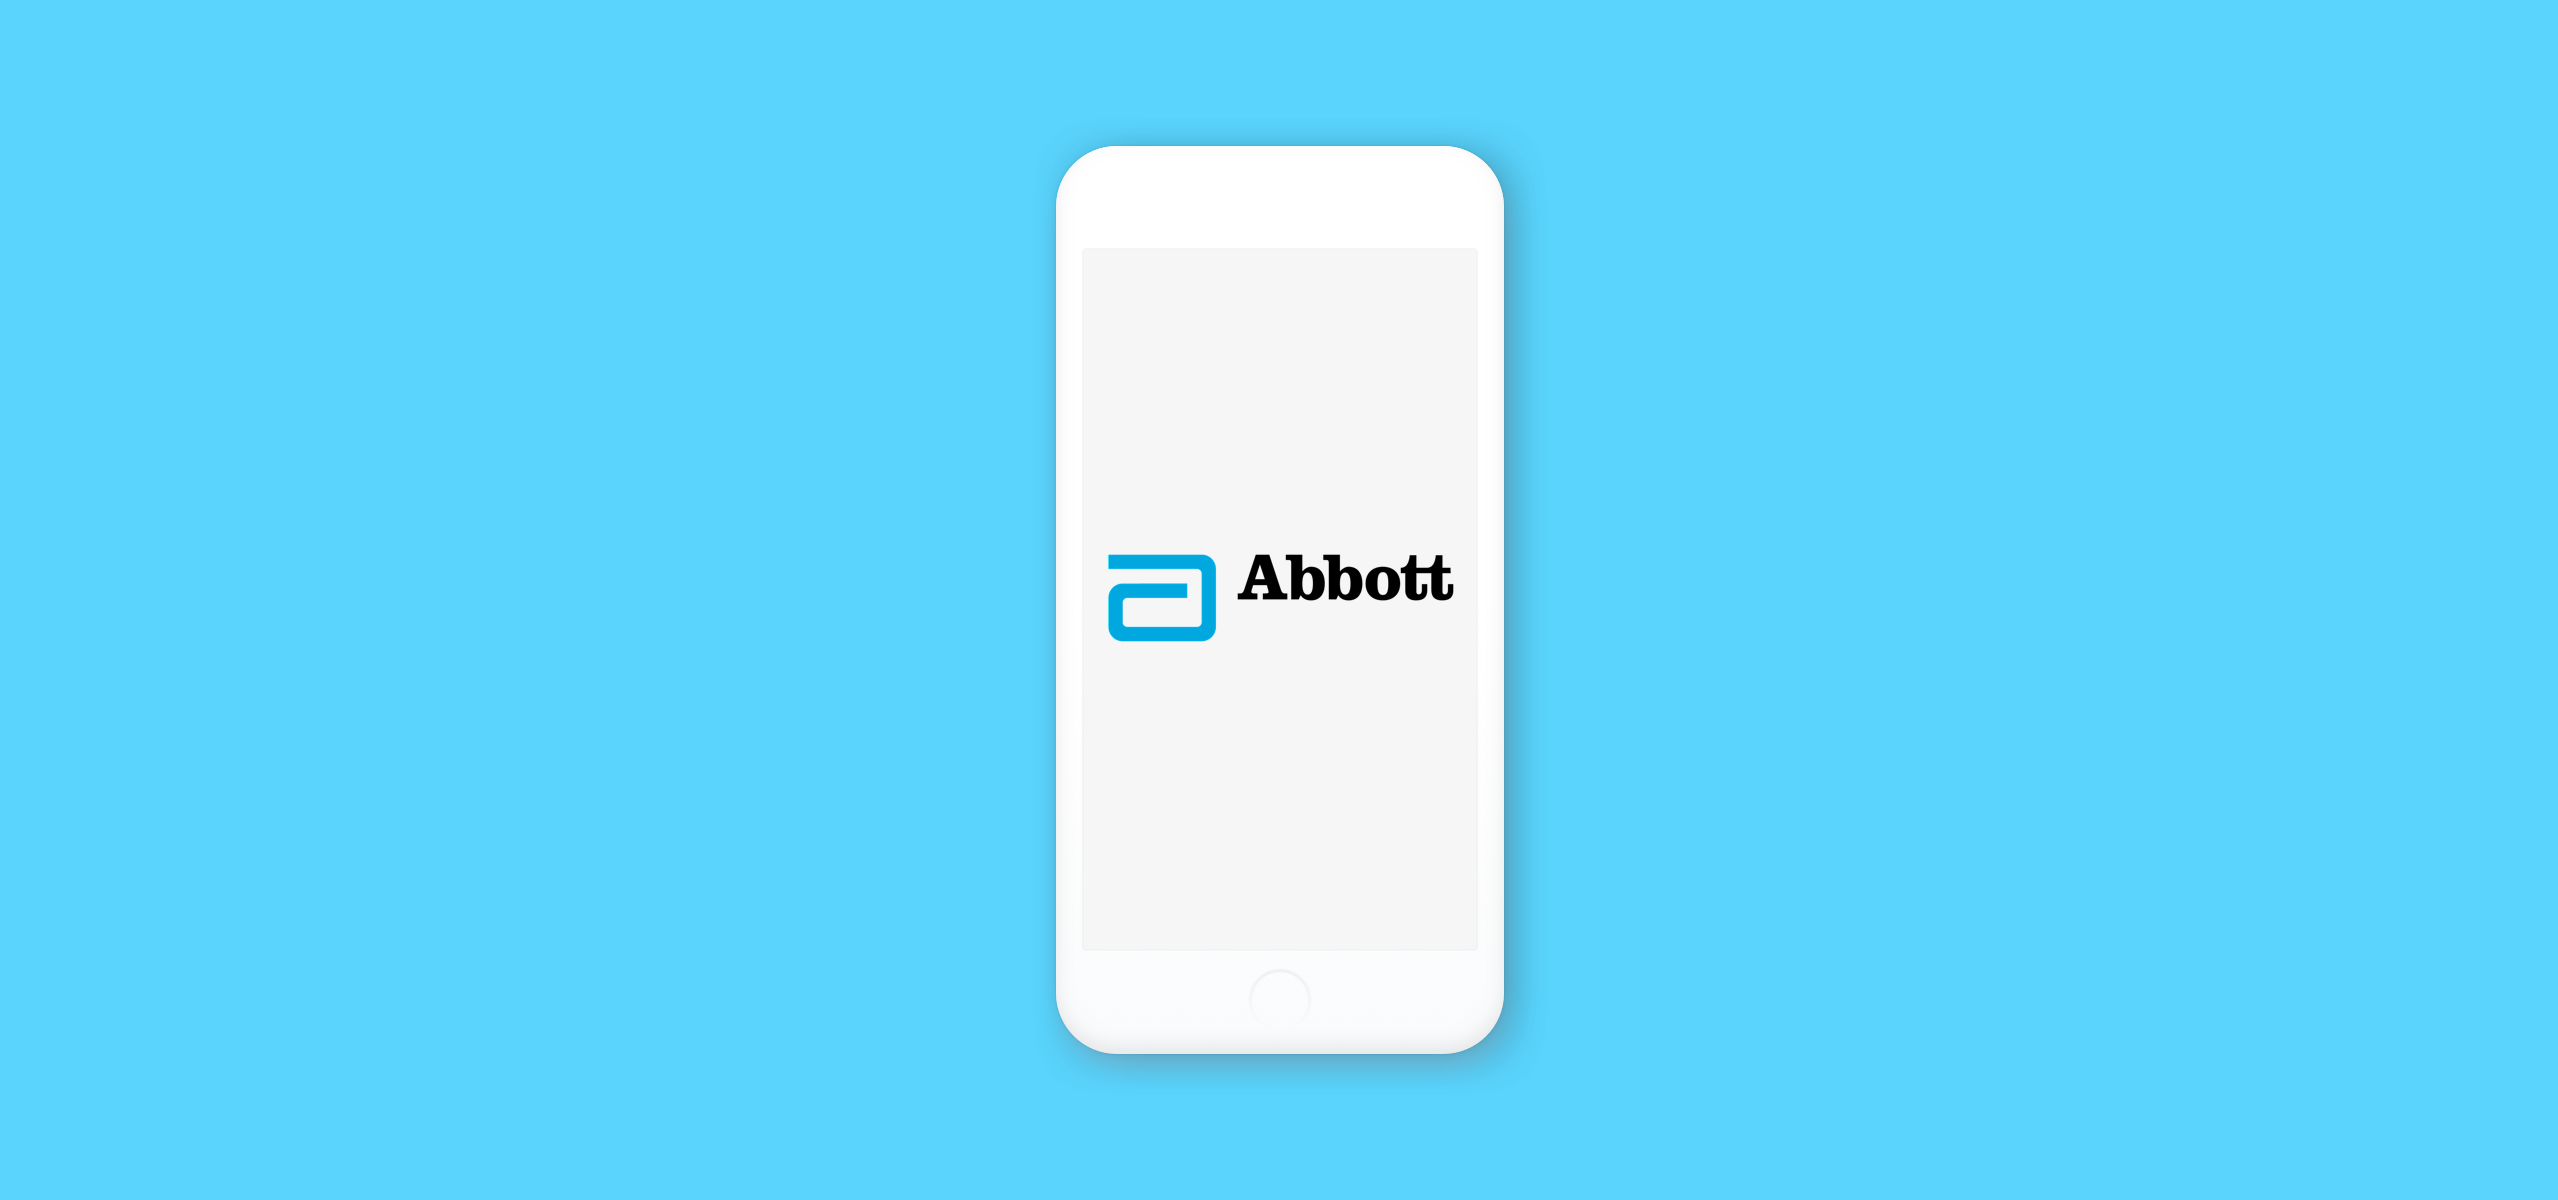 Abbott logo on mobile screen